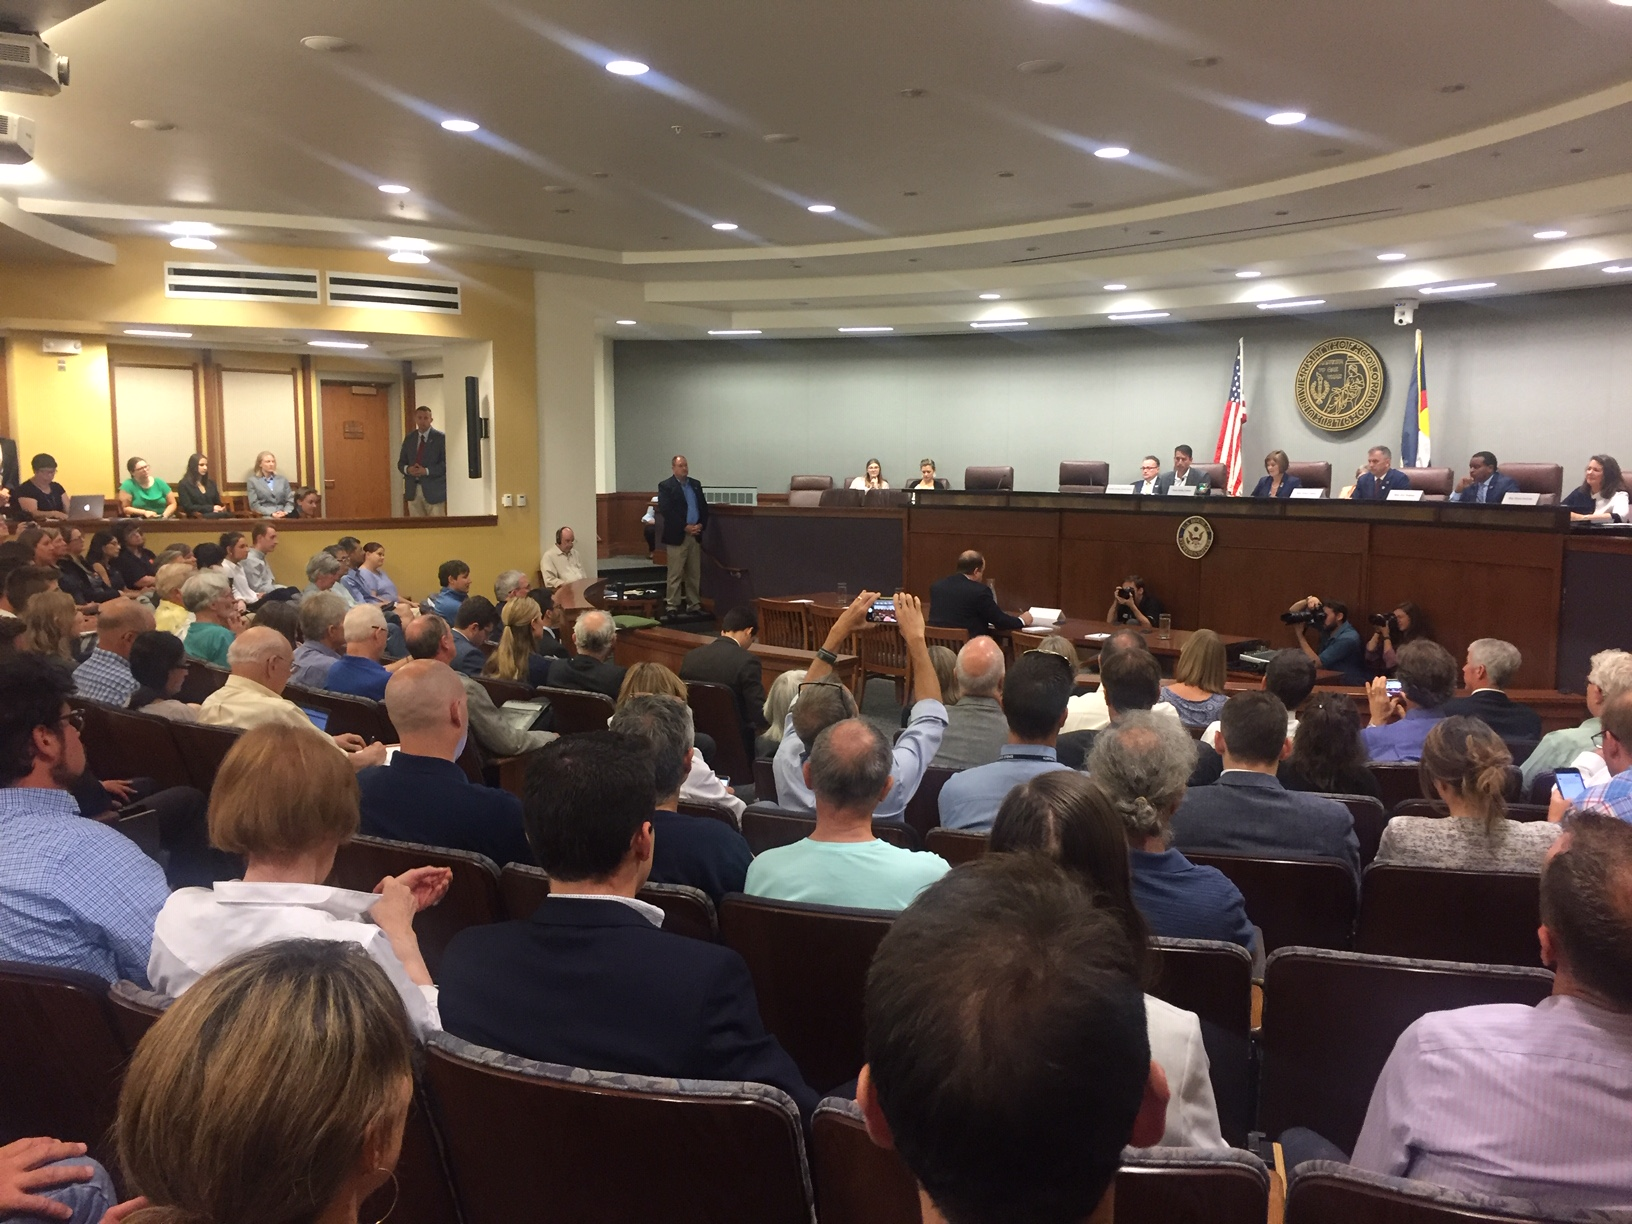 First Congressional Field Hearing of the U.S. House Select Committee on the Climate Crisis